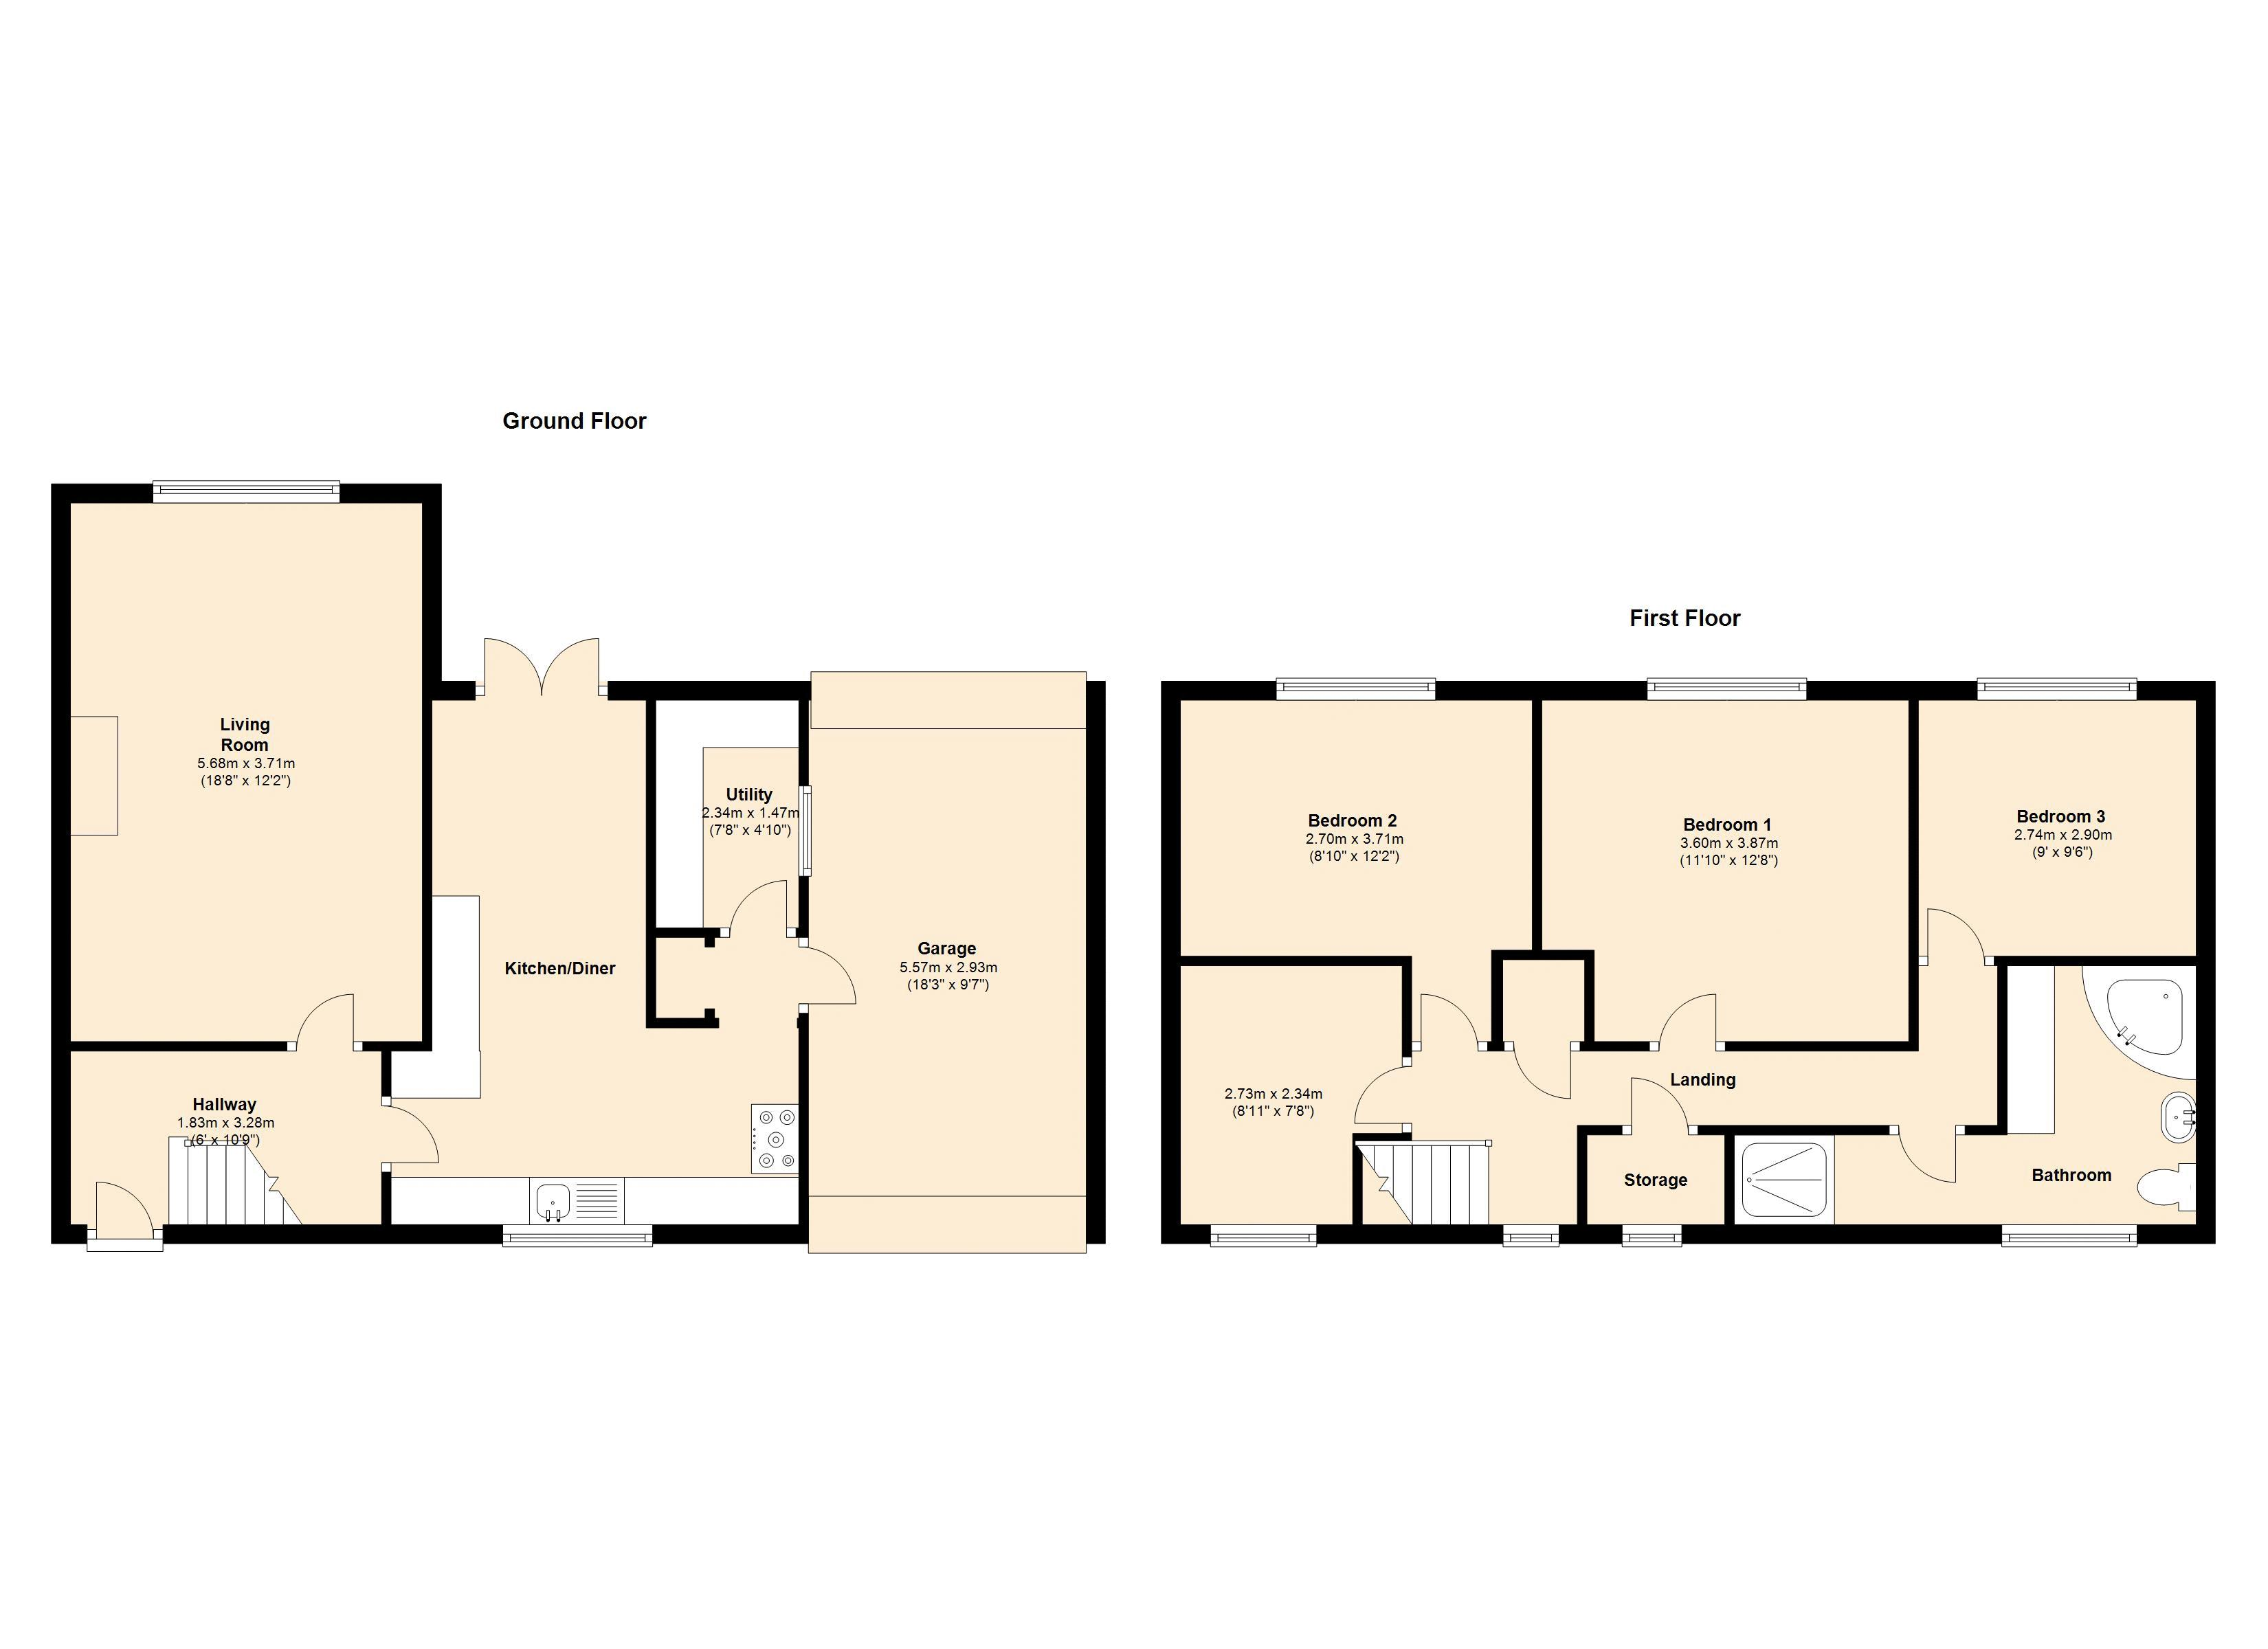 4 Bedroom House For Sale In Scunthorpe